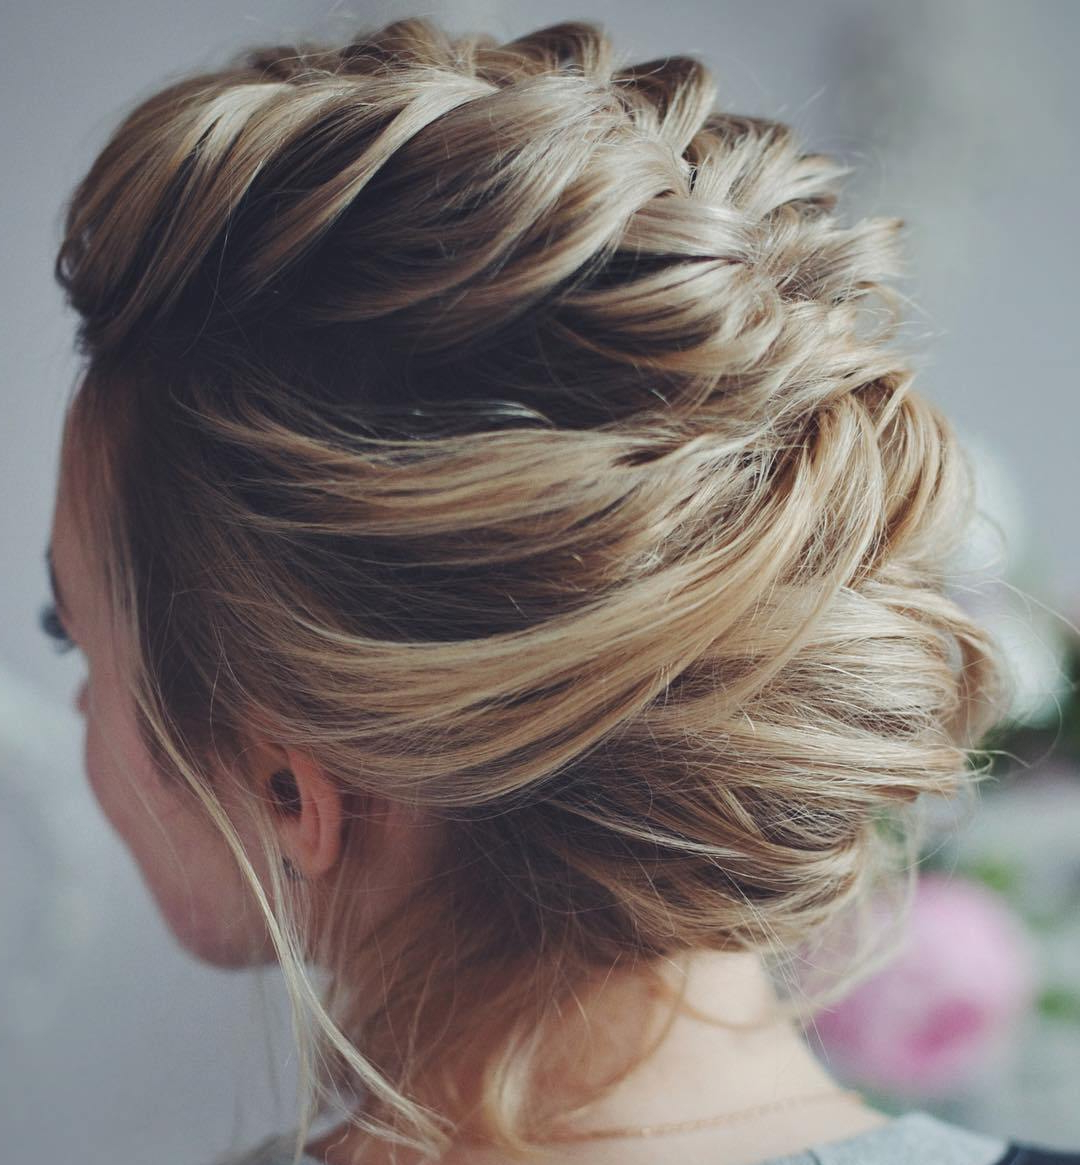 50 Hottest Prom Hairstyles For Short Hair Throughout Famous Classic Prom Updos With Thick Accent Braid (View 6 of 20)